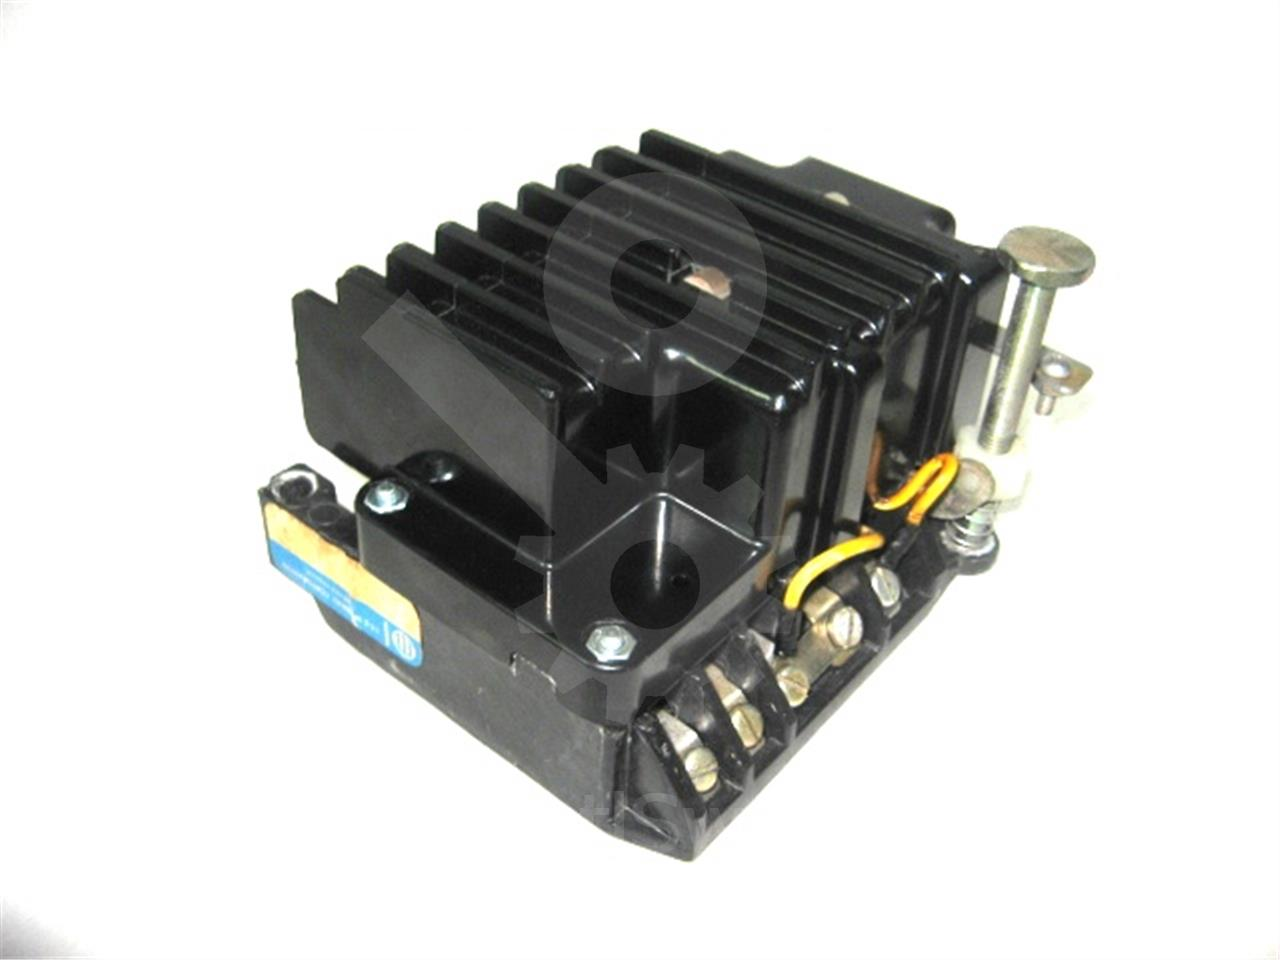 Abb Ite Bbc Ite 125vdc Control Relay Assembly